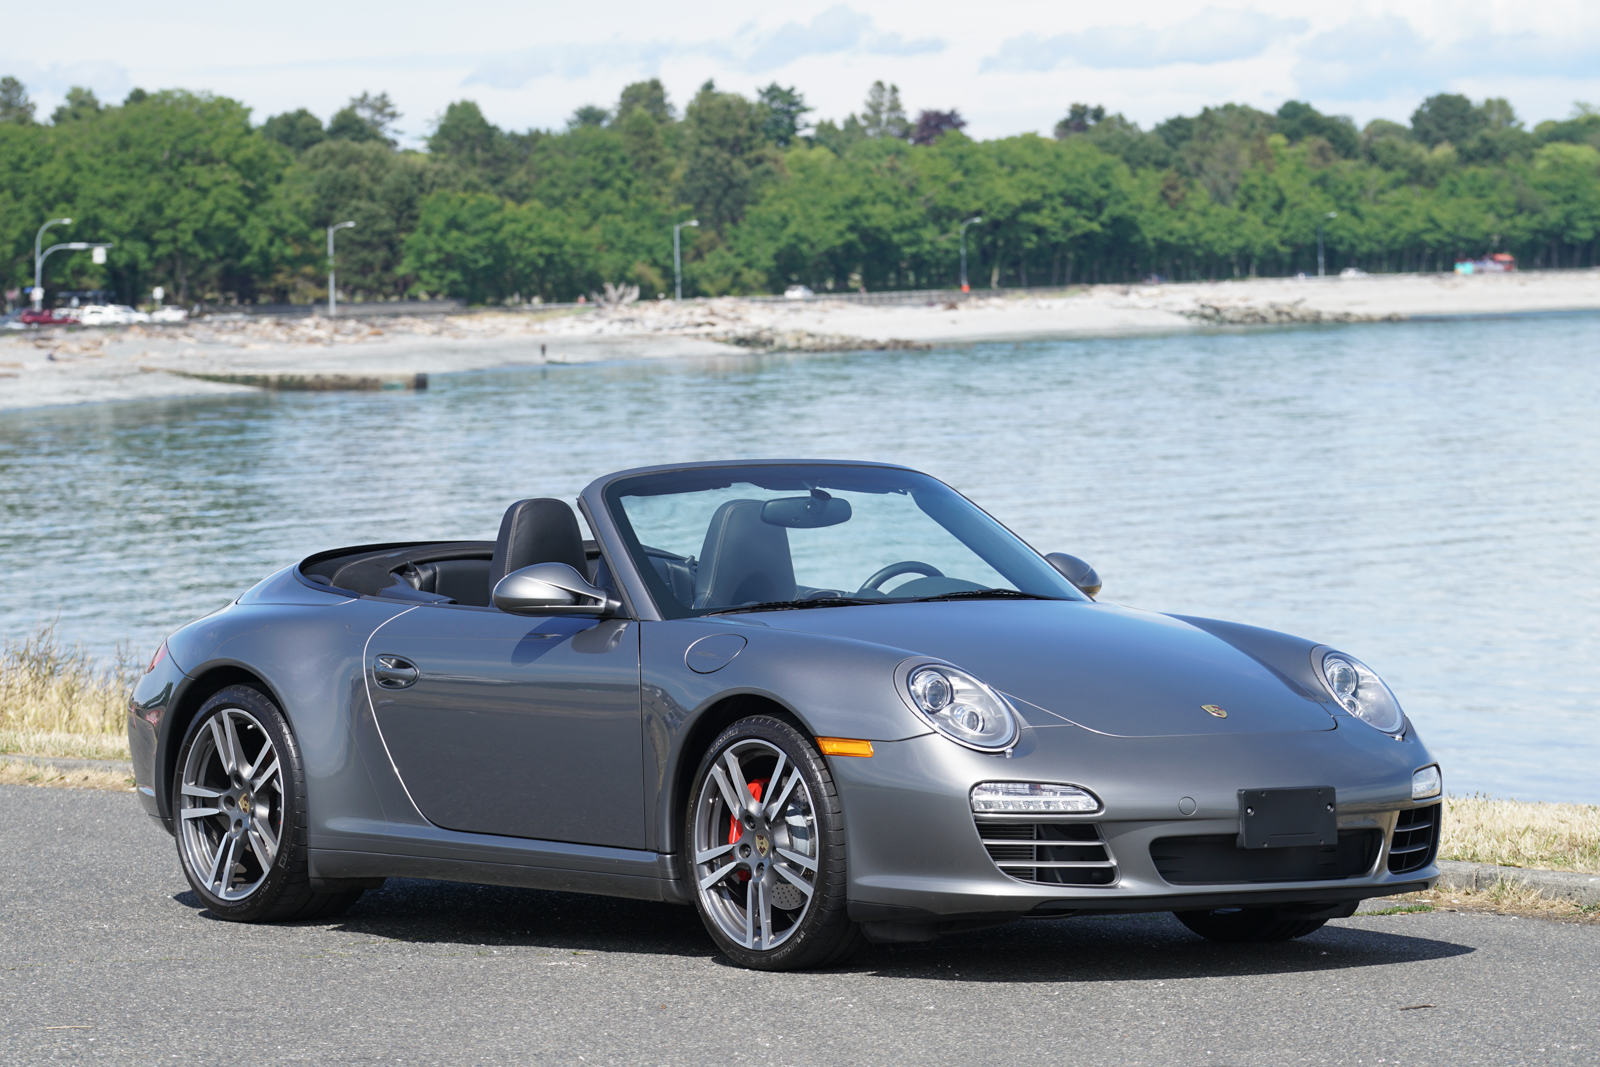 2011 Porsche 911 Carrera 4S Cabriolet for sale